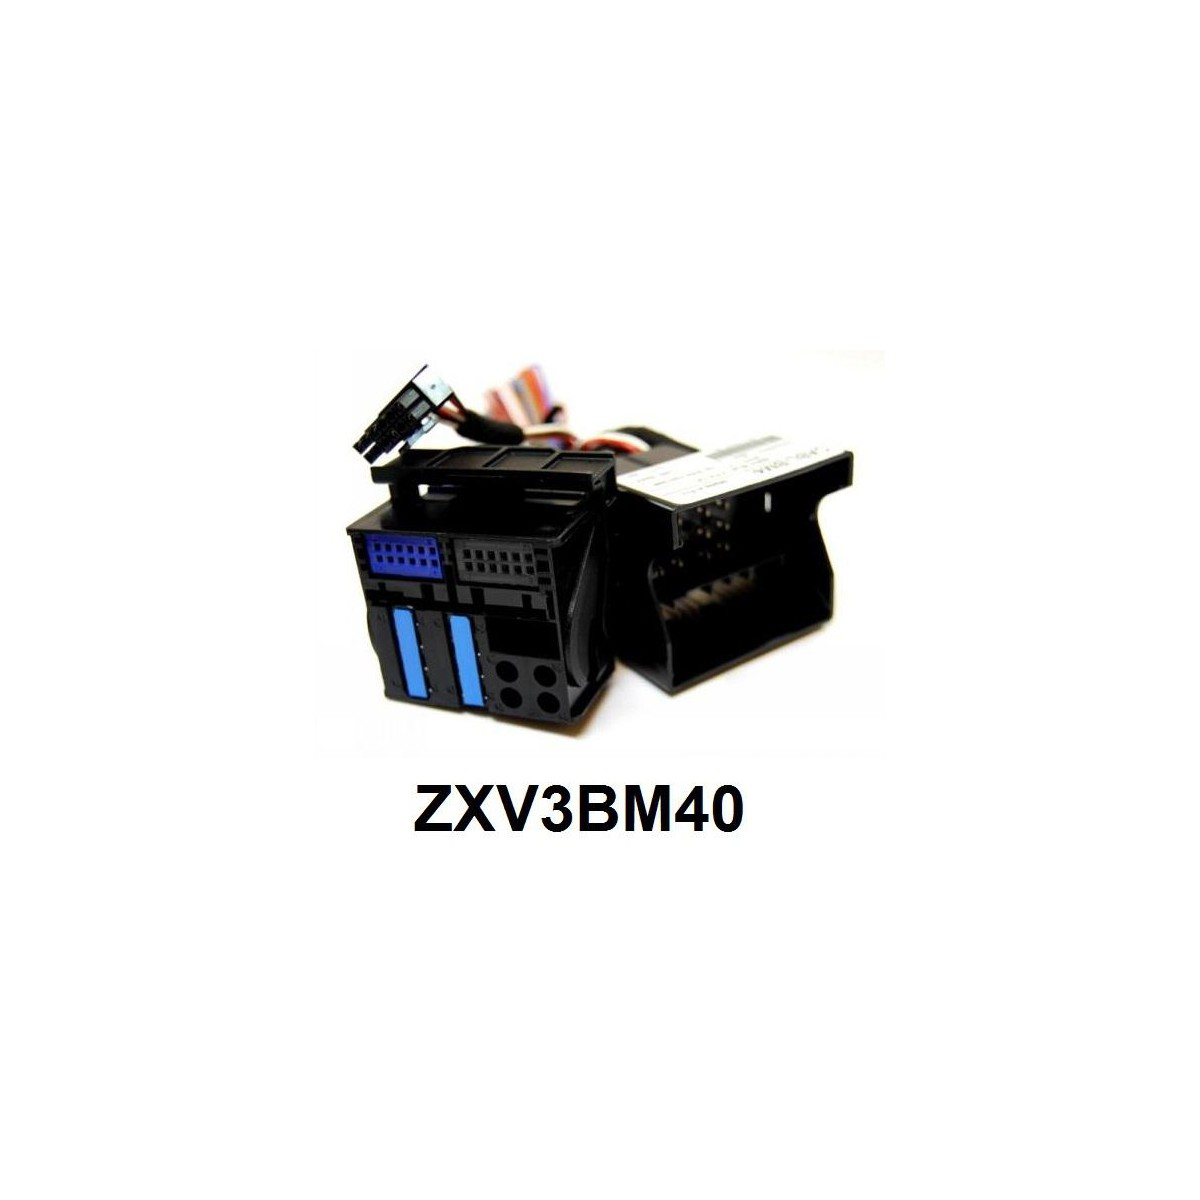 zemex v3 1 bluetooth f r bmw zxv3bm40. Black Bedroom Furniture Sets. Home Design Ideas